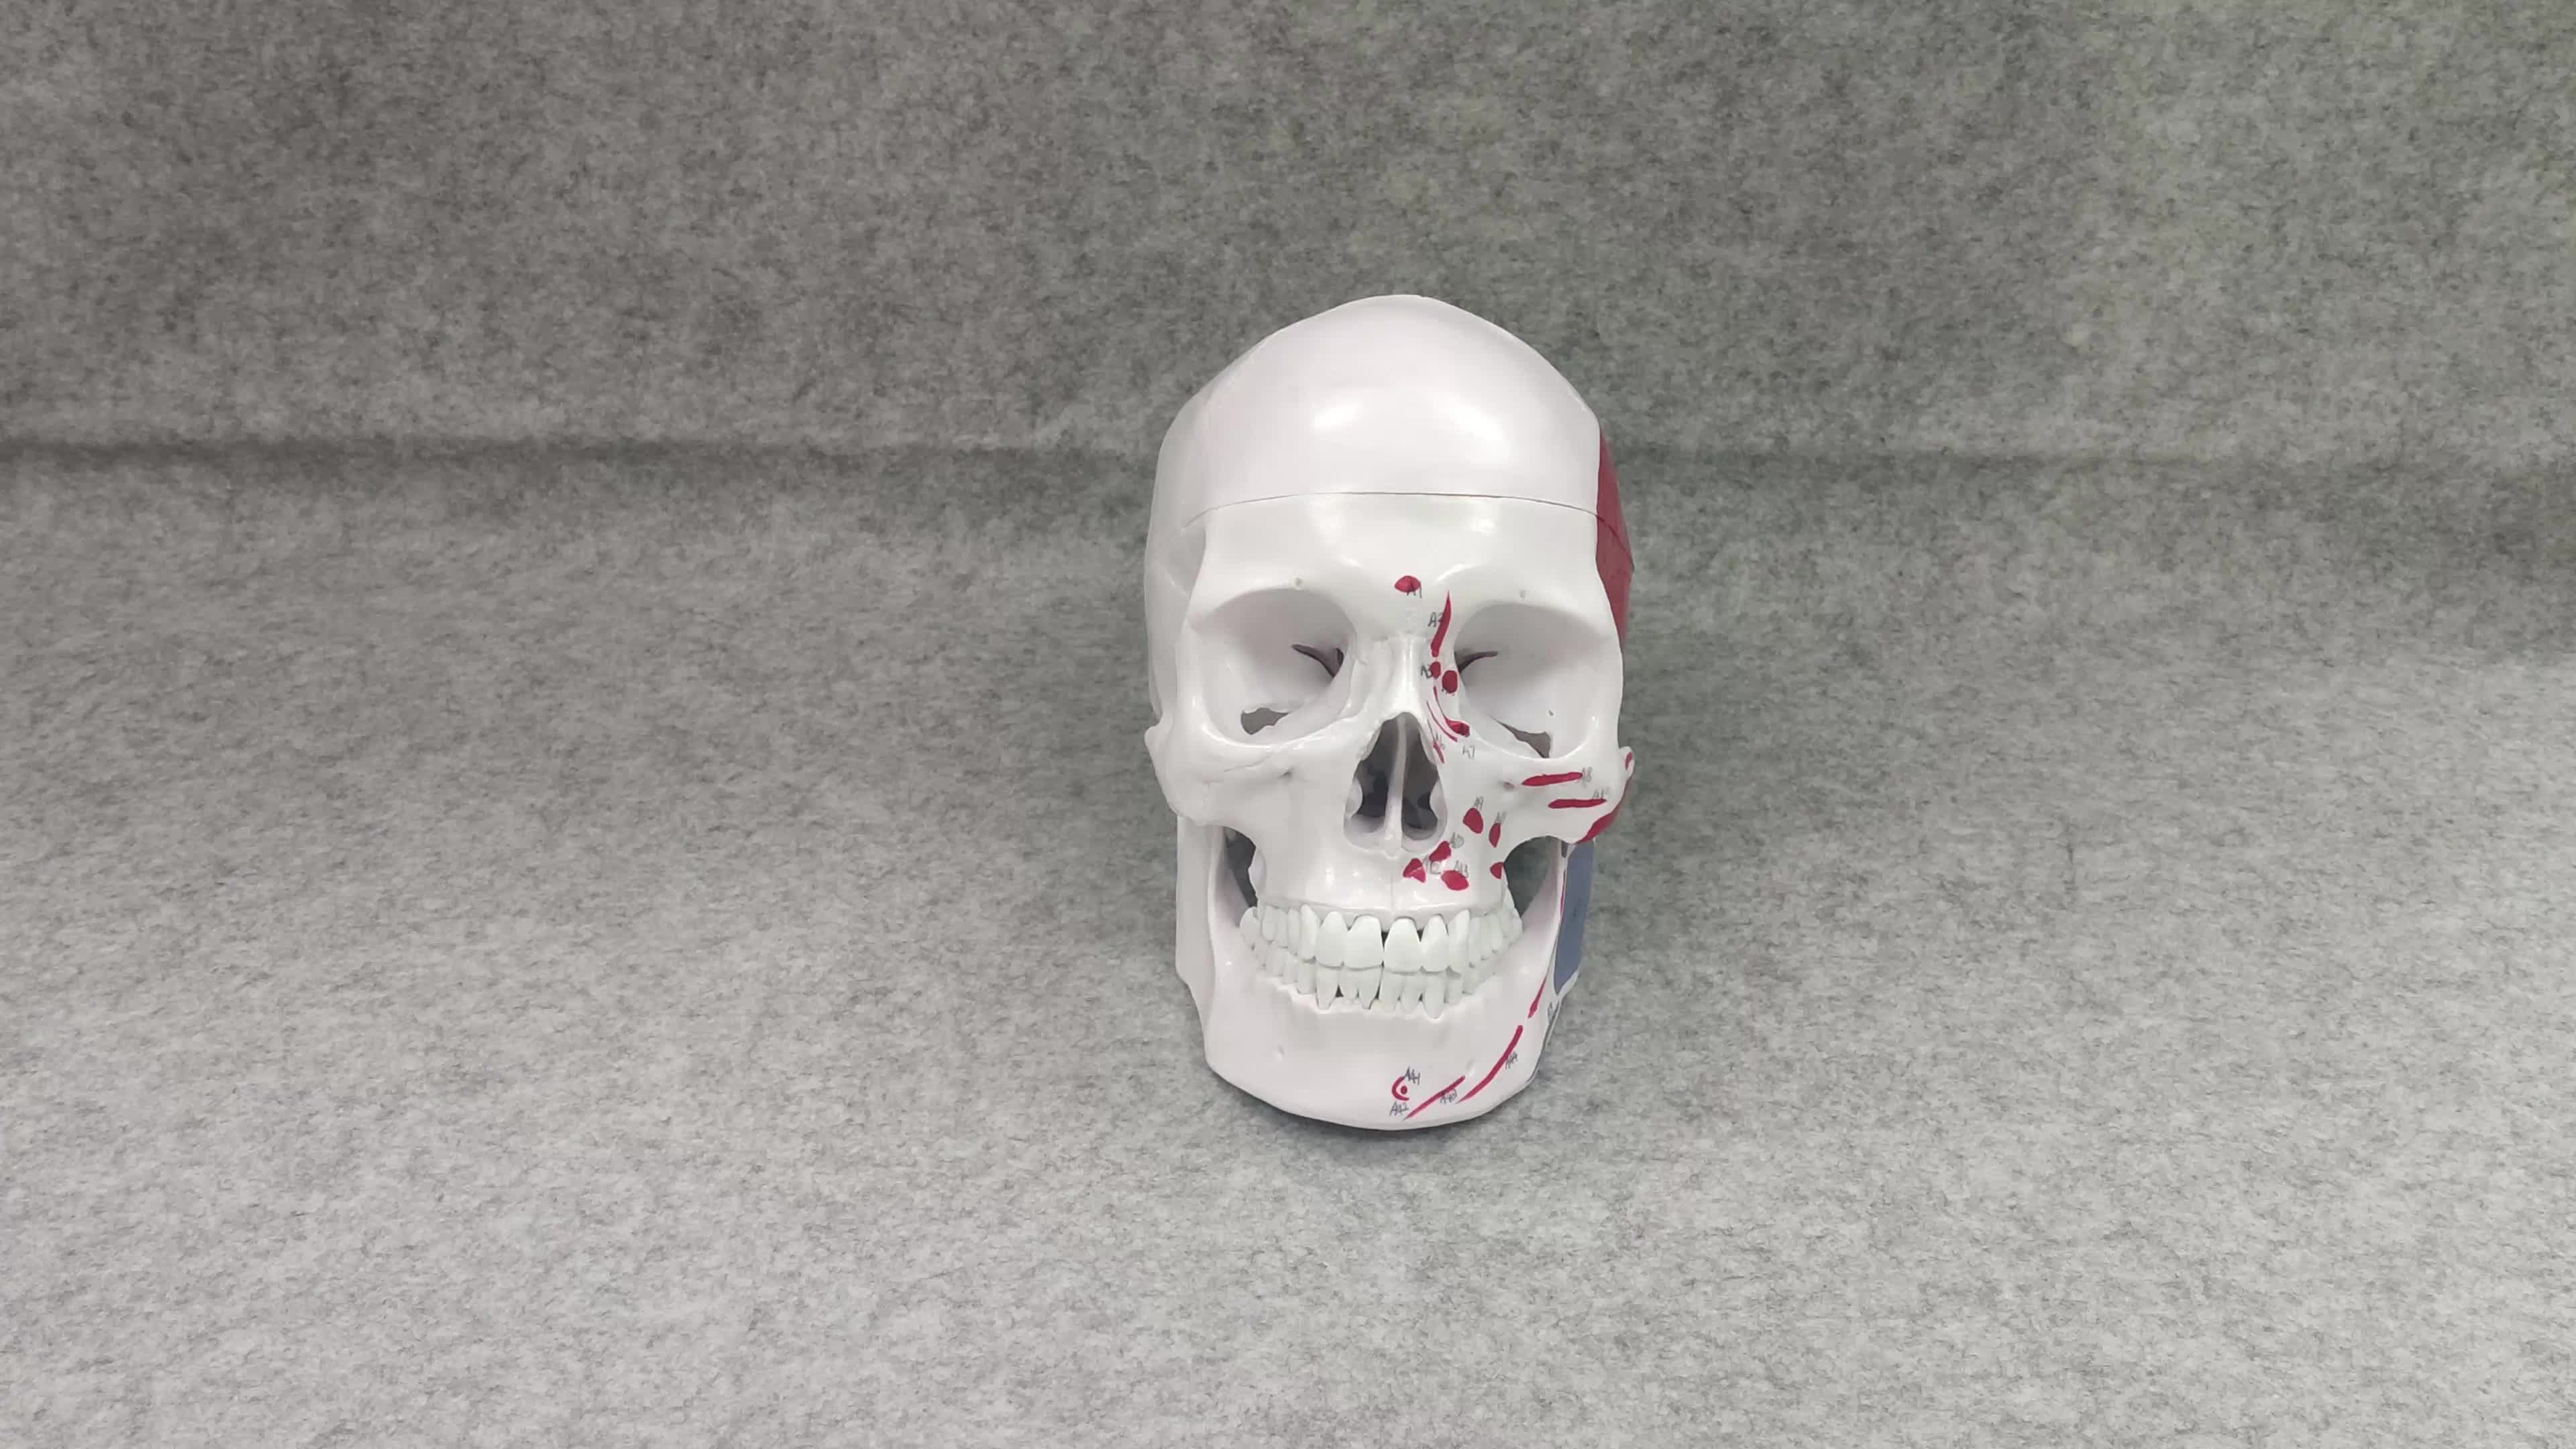 Colored Painted Muscle Marked Human Medical Plastic Skull Anatomical Model